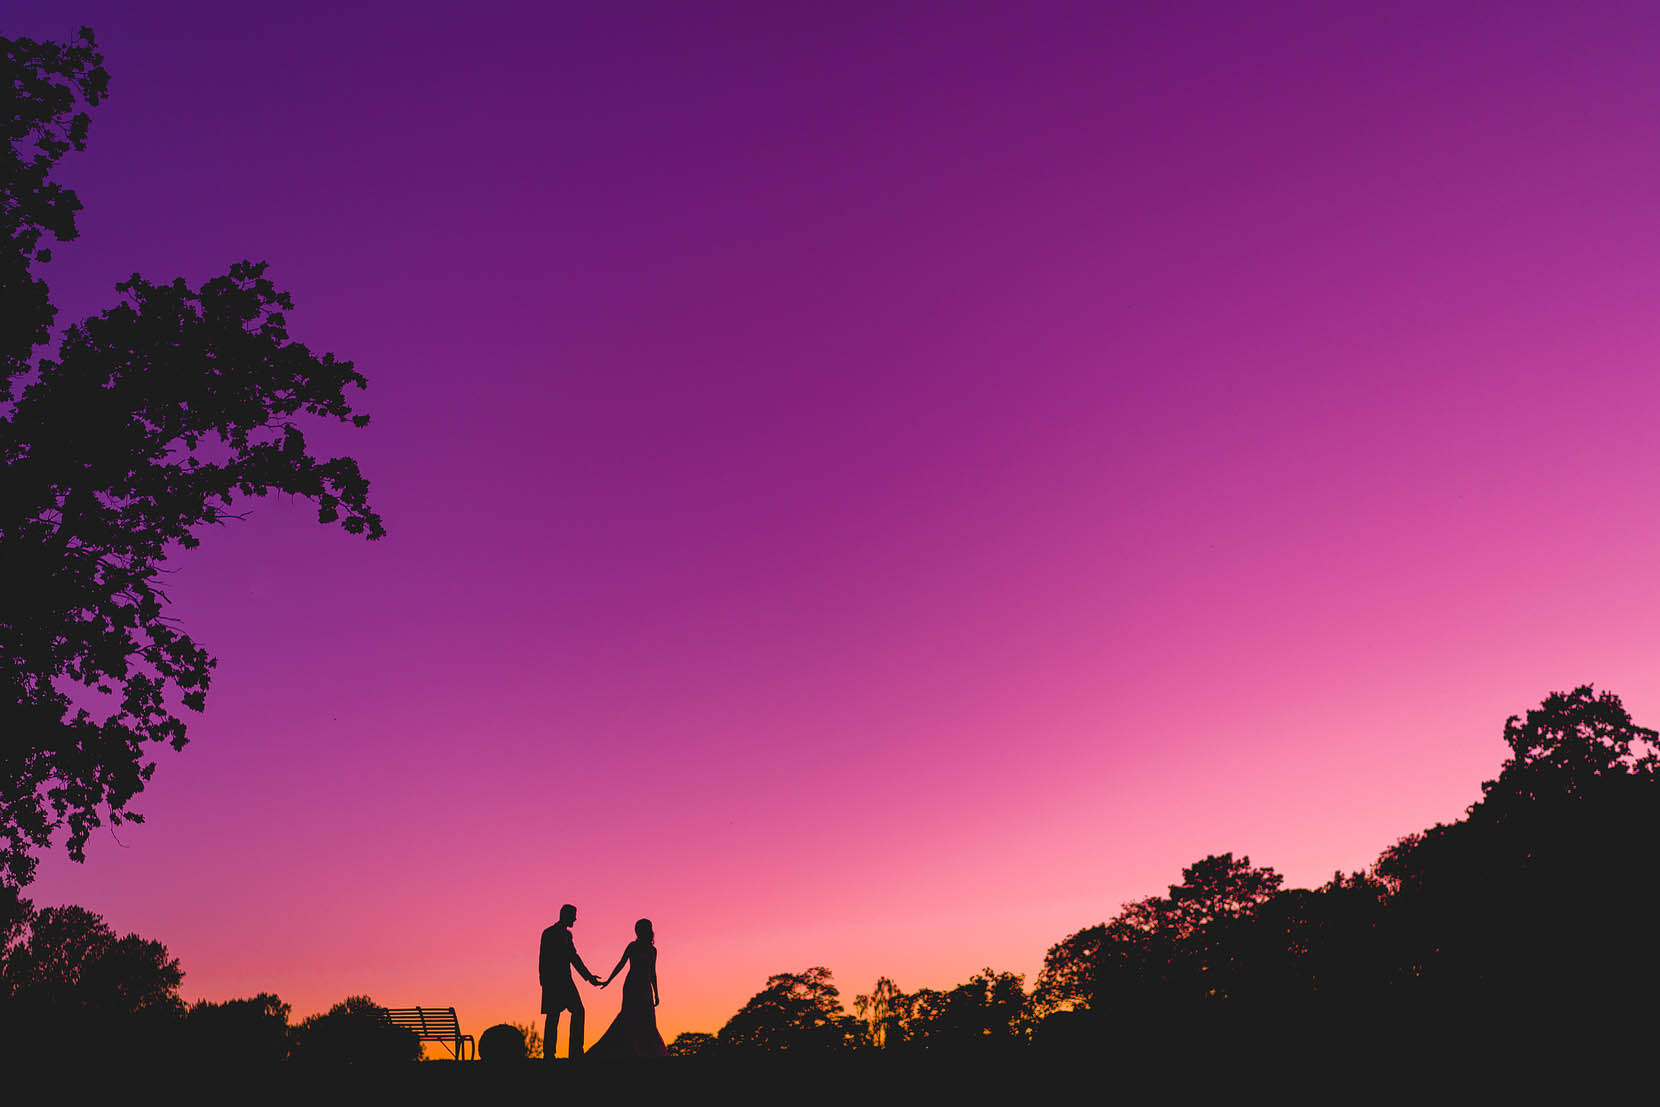 oxnead hall summer wedding of laura and steve with a gorgeous colourful sunset